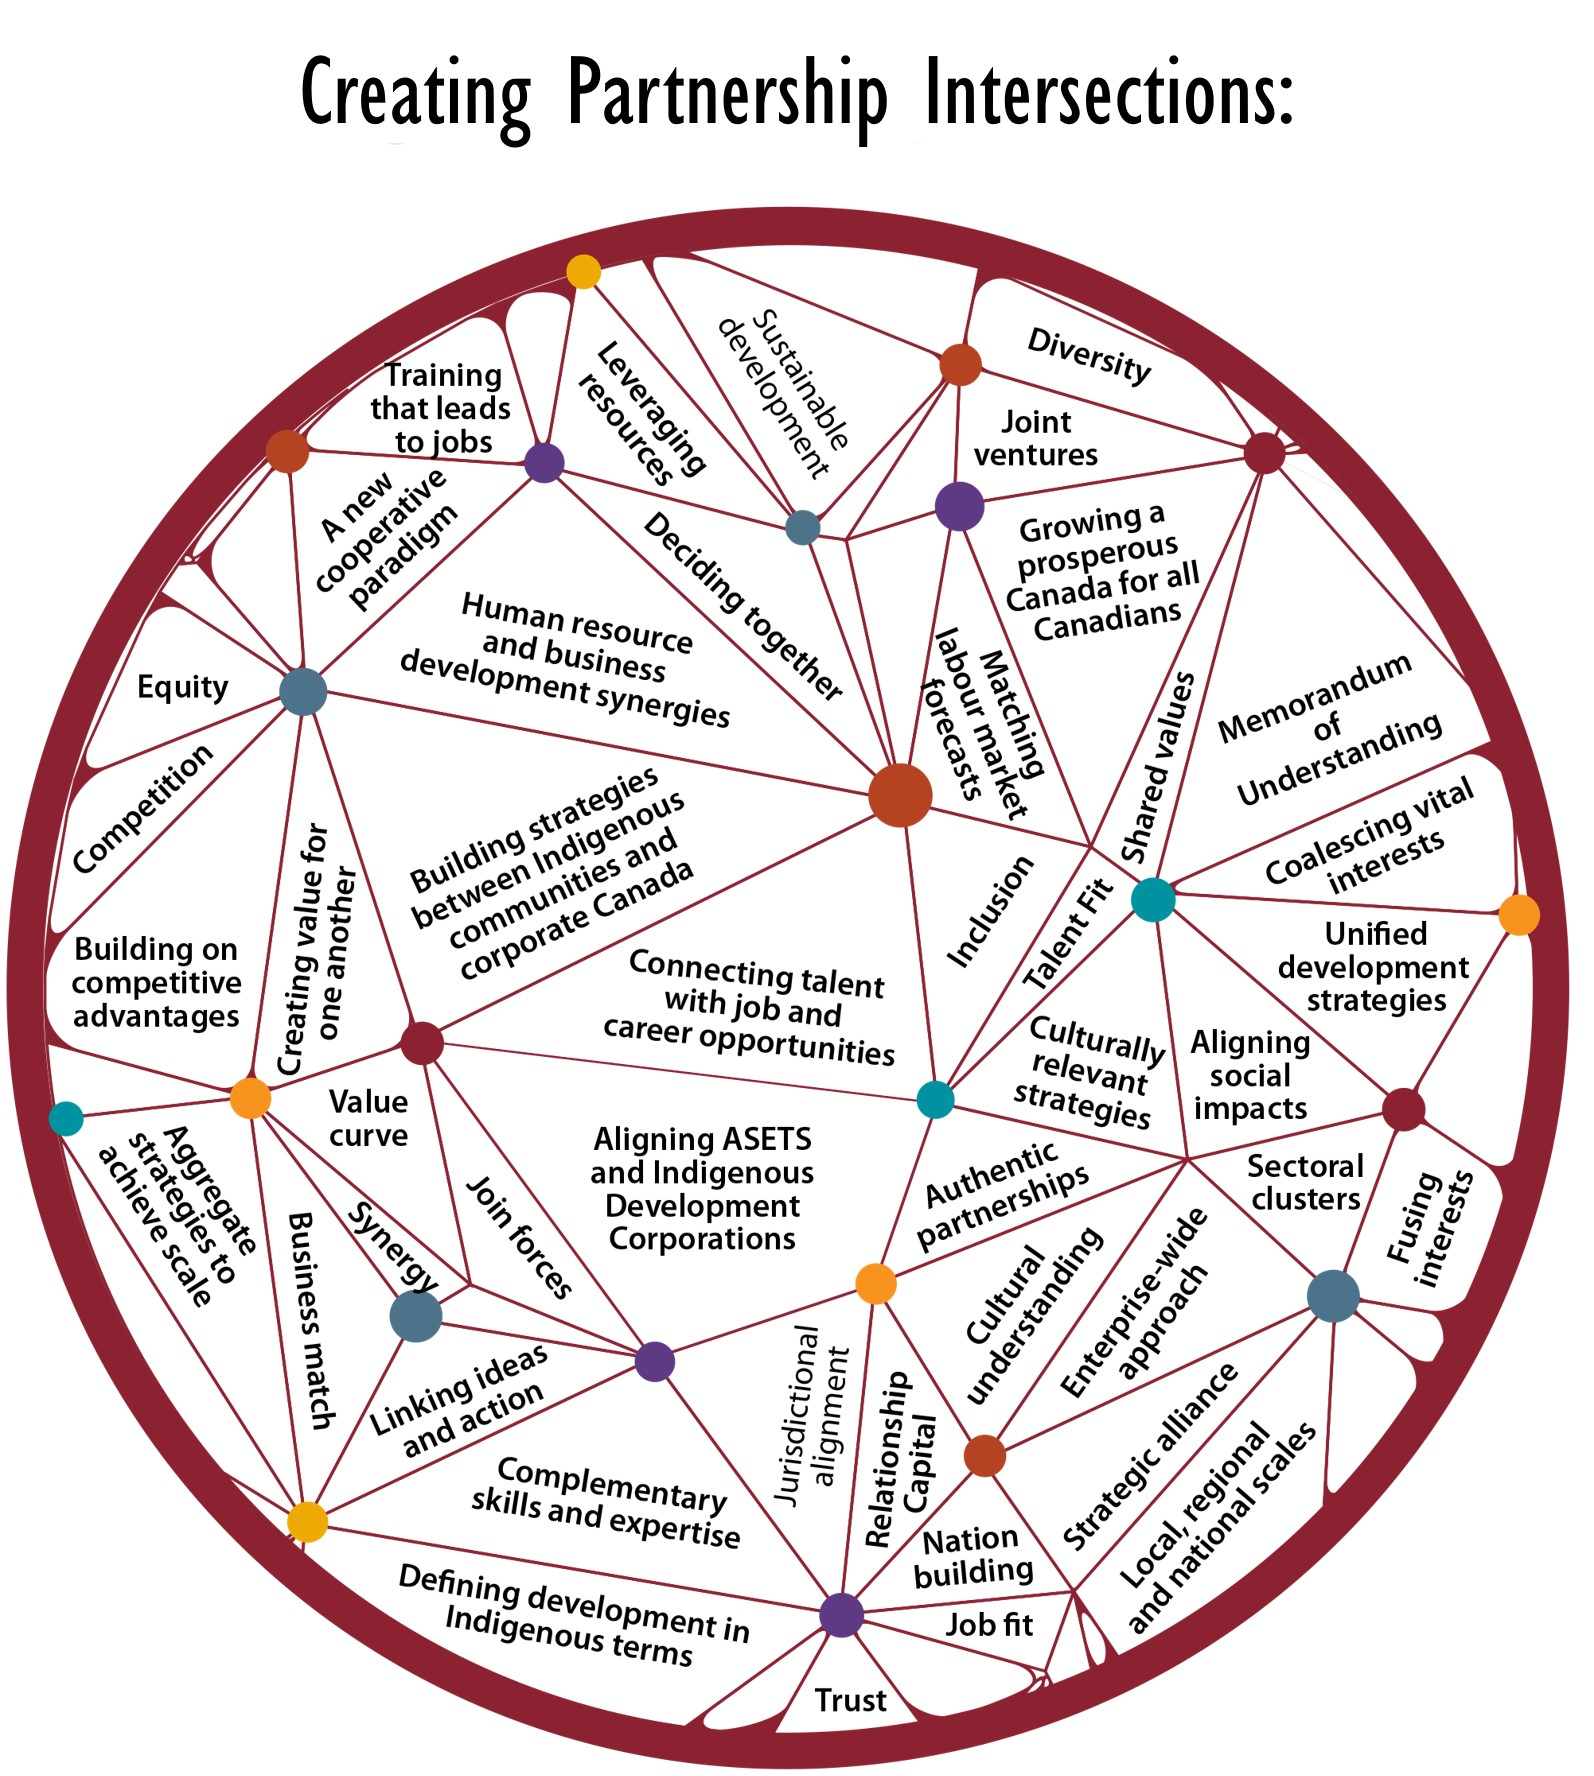 """Creating Partnership Intersections. """"Indigenous people have for many years spoken about the value of holistic approaches to development. Building full relationships between corporate Canada and Indigenous people is one way of increasing Indigenous participation in the Canadian economy."""" Graphic credits to: Indigenous Works Canada. Used with permission from Indigenous Works CEO Kelly J. Lendsay [170]"""